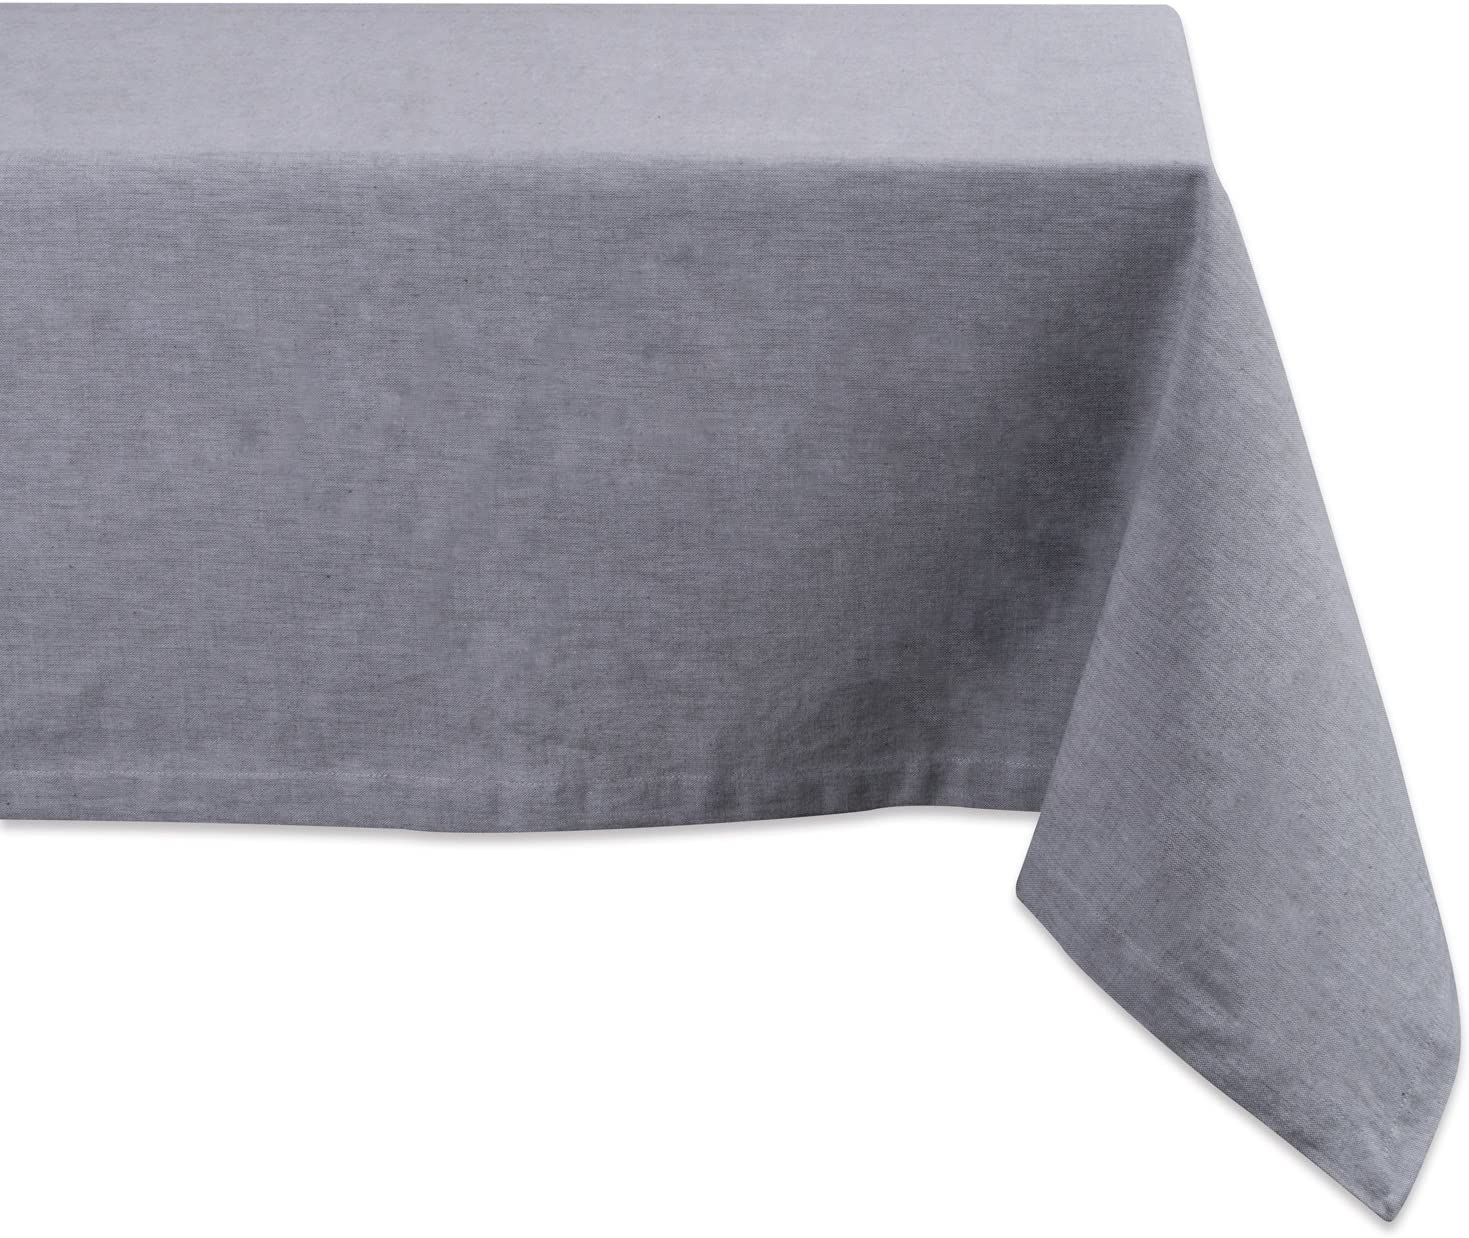 DII 100% Cotton, Chambray Tablecloth, Everyday Basic, Seats 6 to 8 People, 60x104, Gray